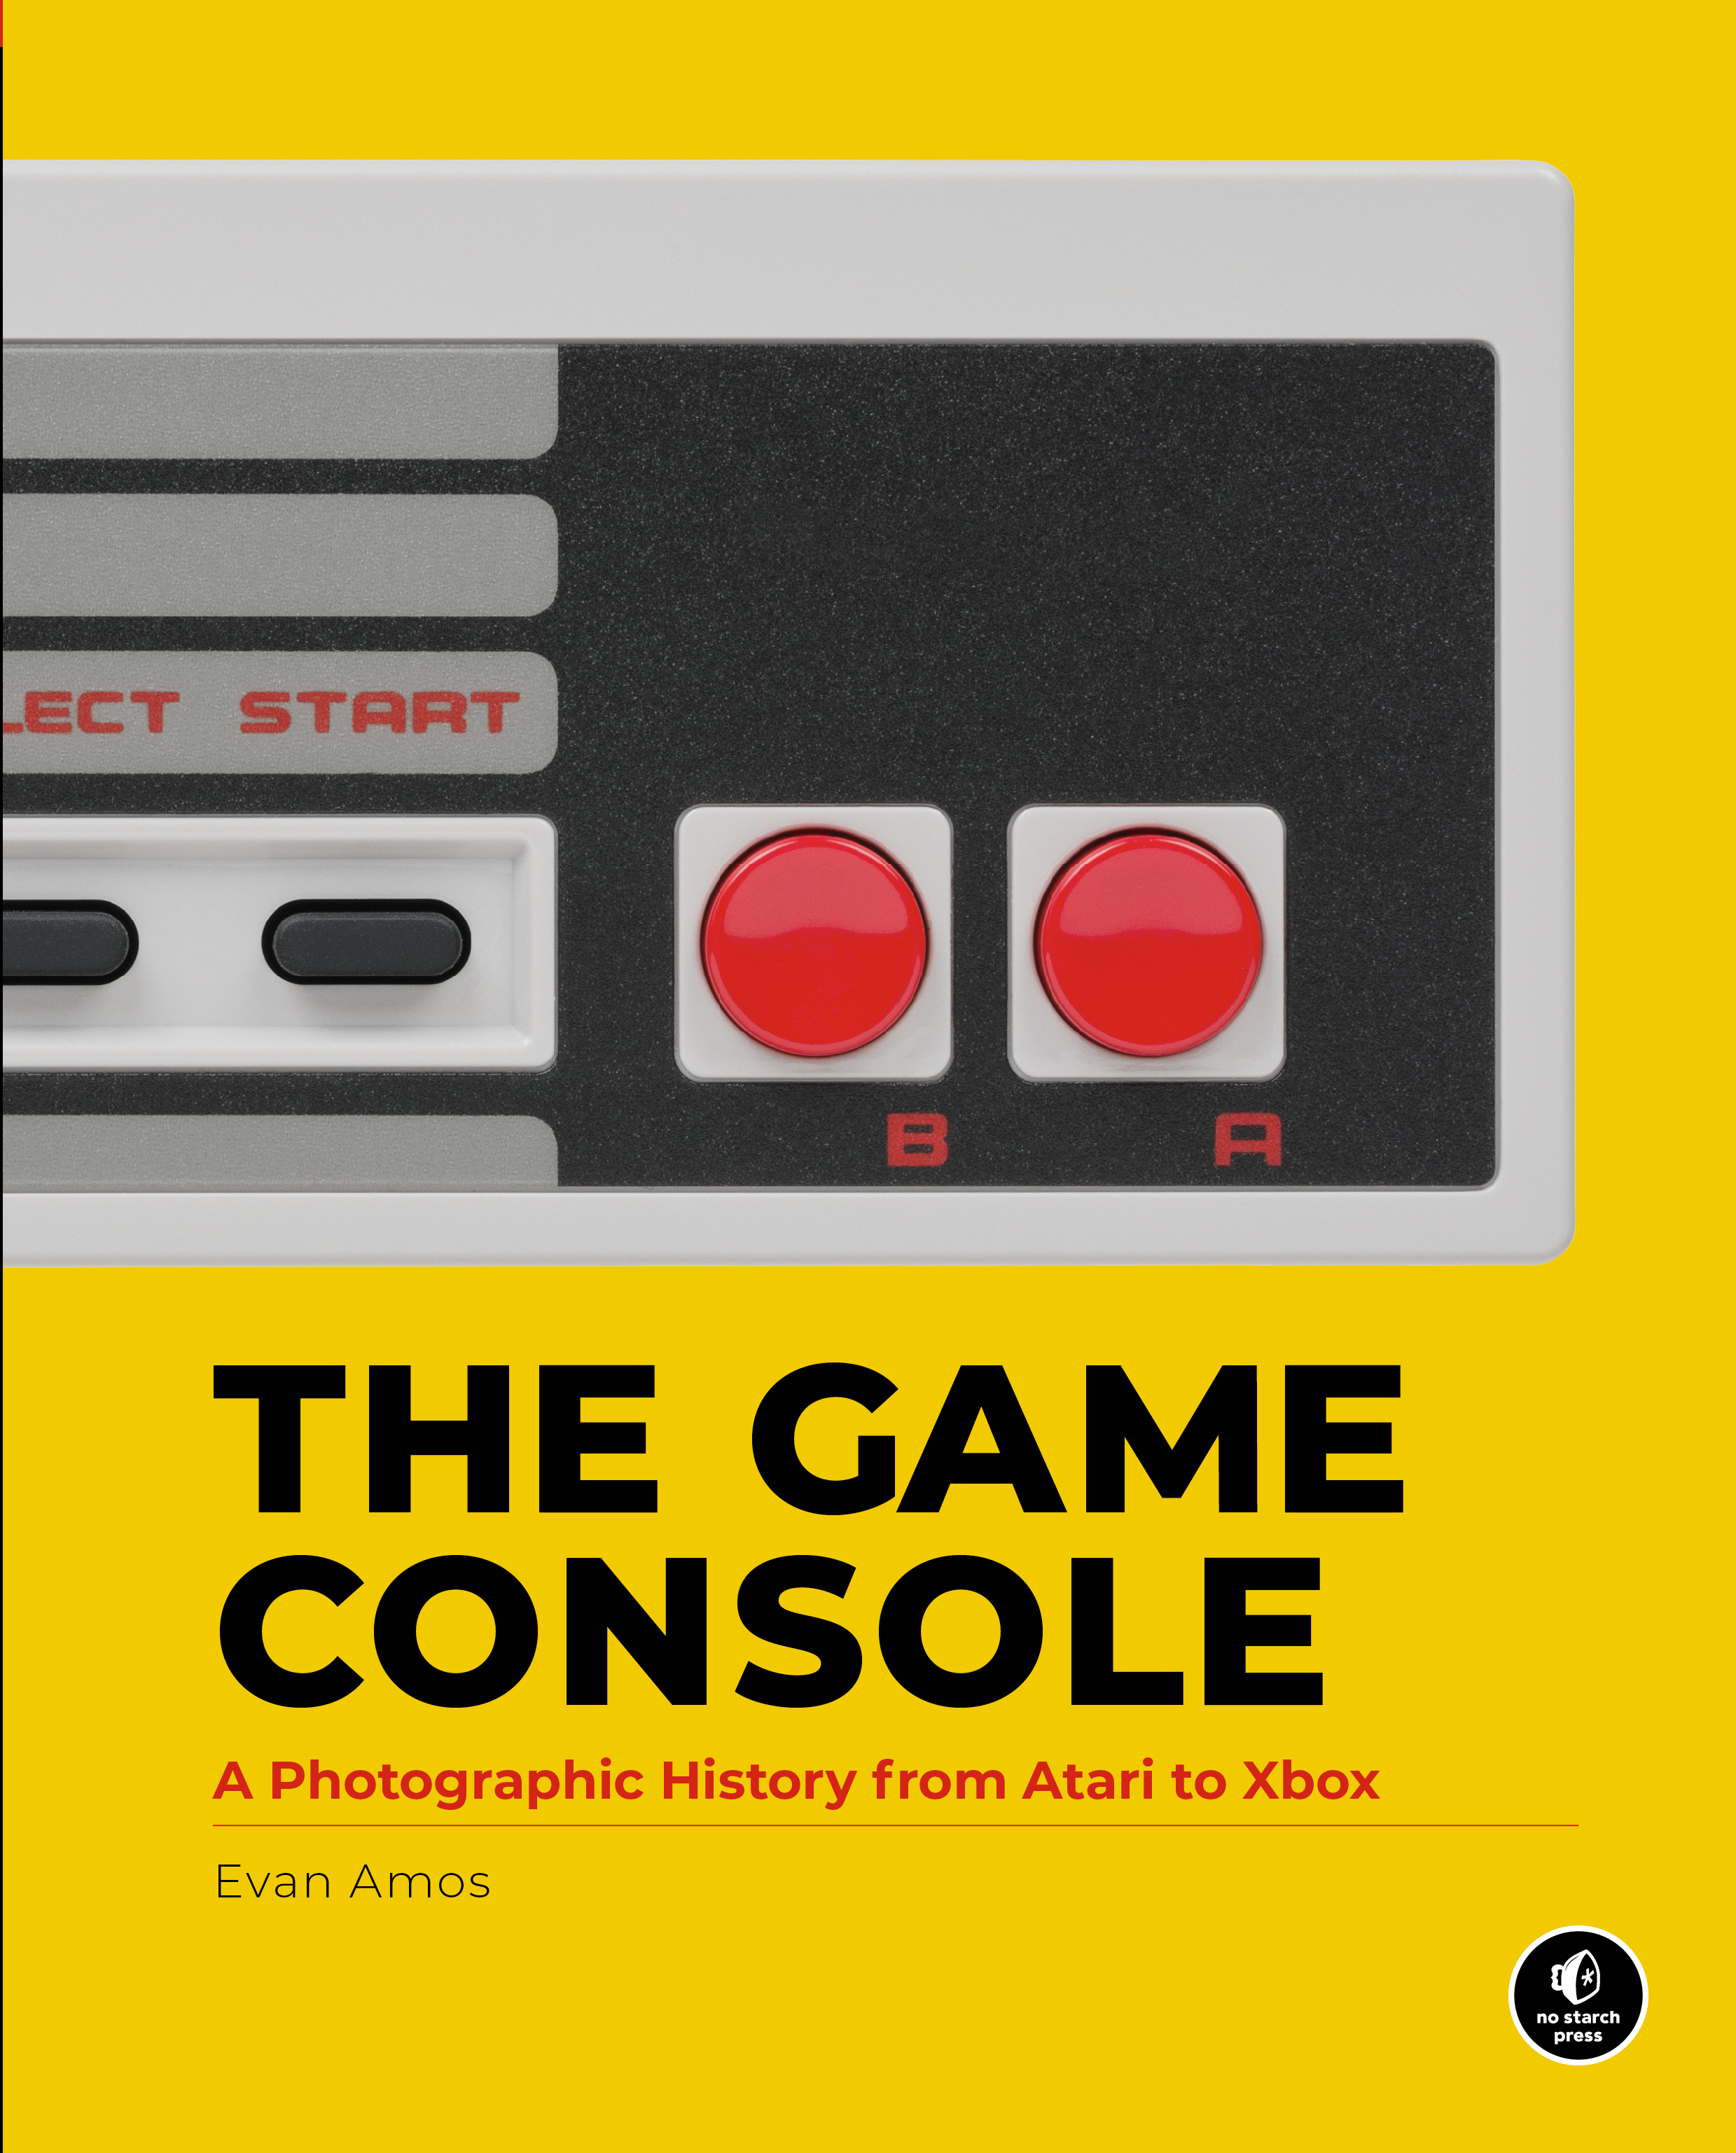 GameConsoleFrontCover.png